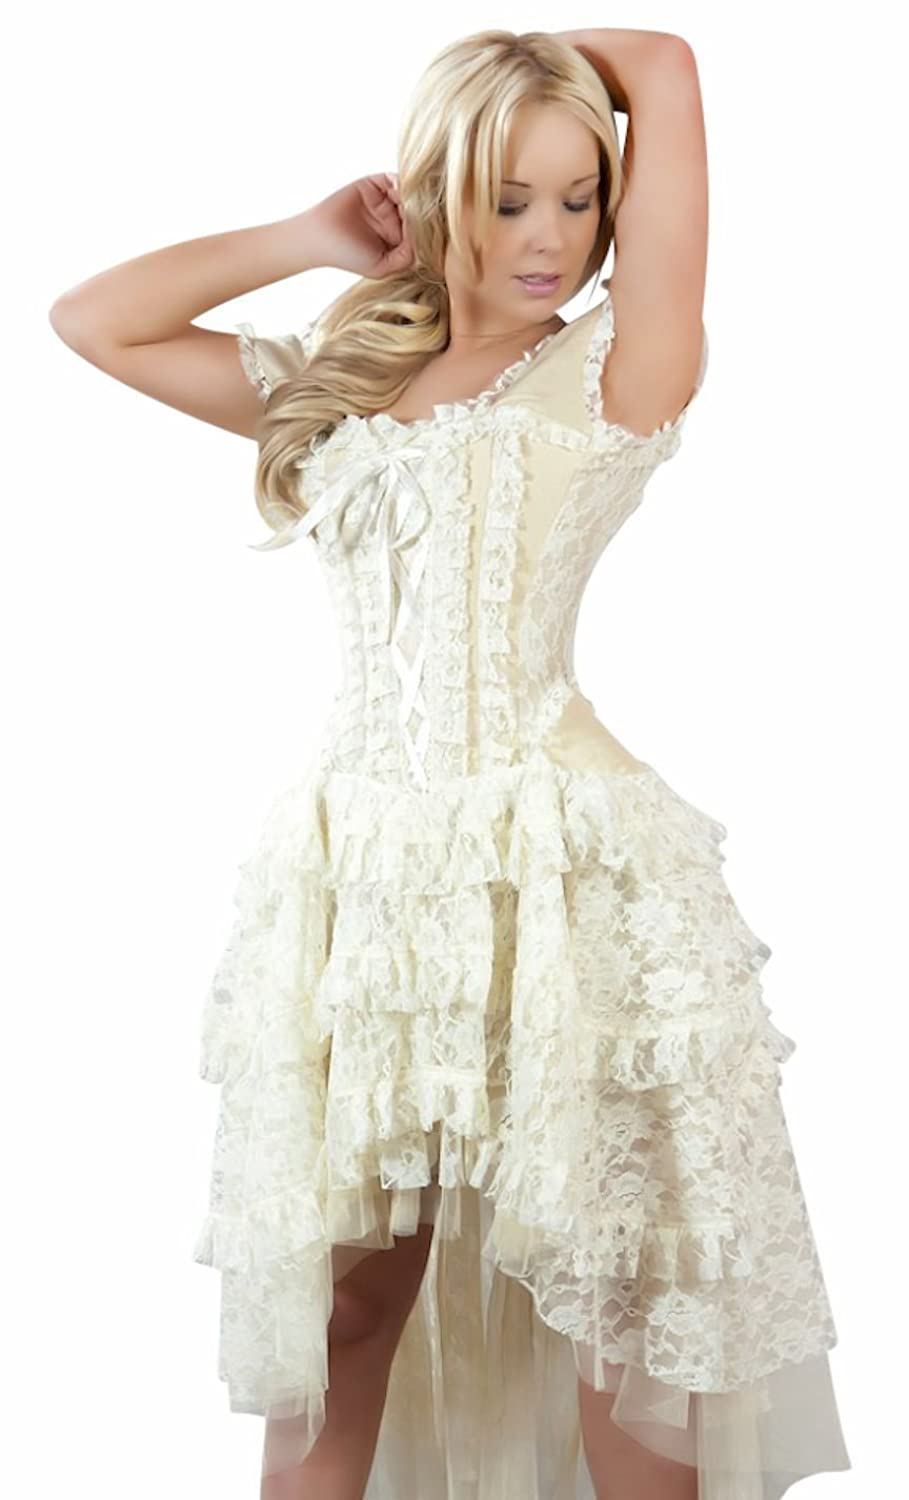 Steampunk Plus Size Clothing & Costumes Steampunk Corset Dress $139.99 AT vintagedancer.com